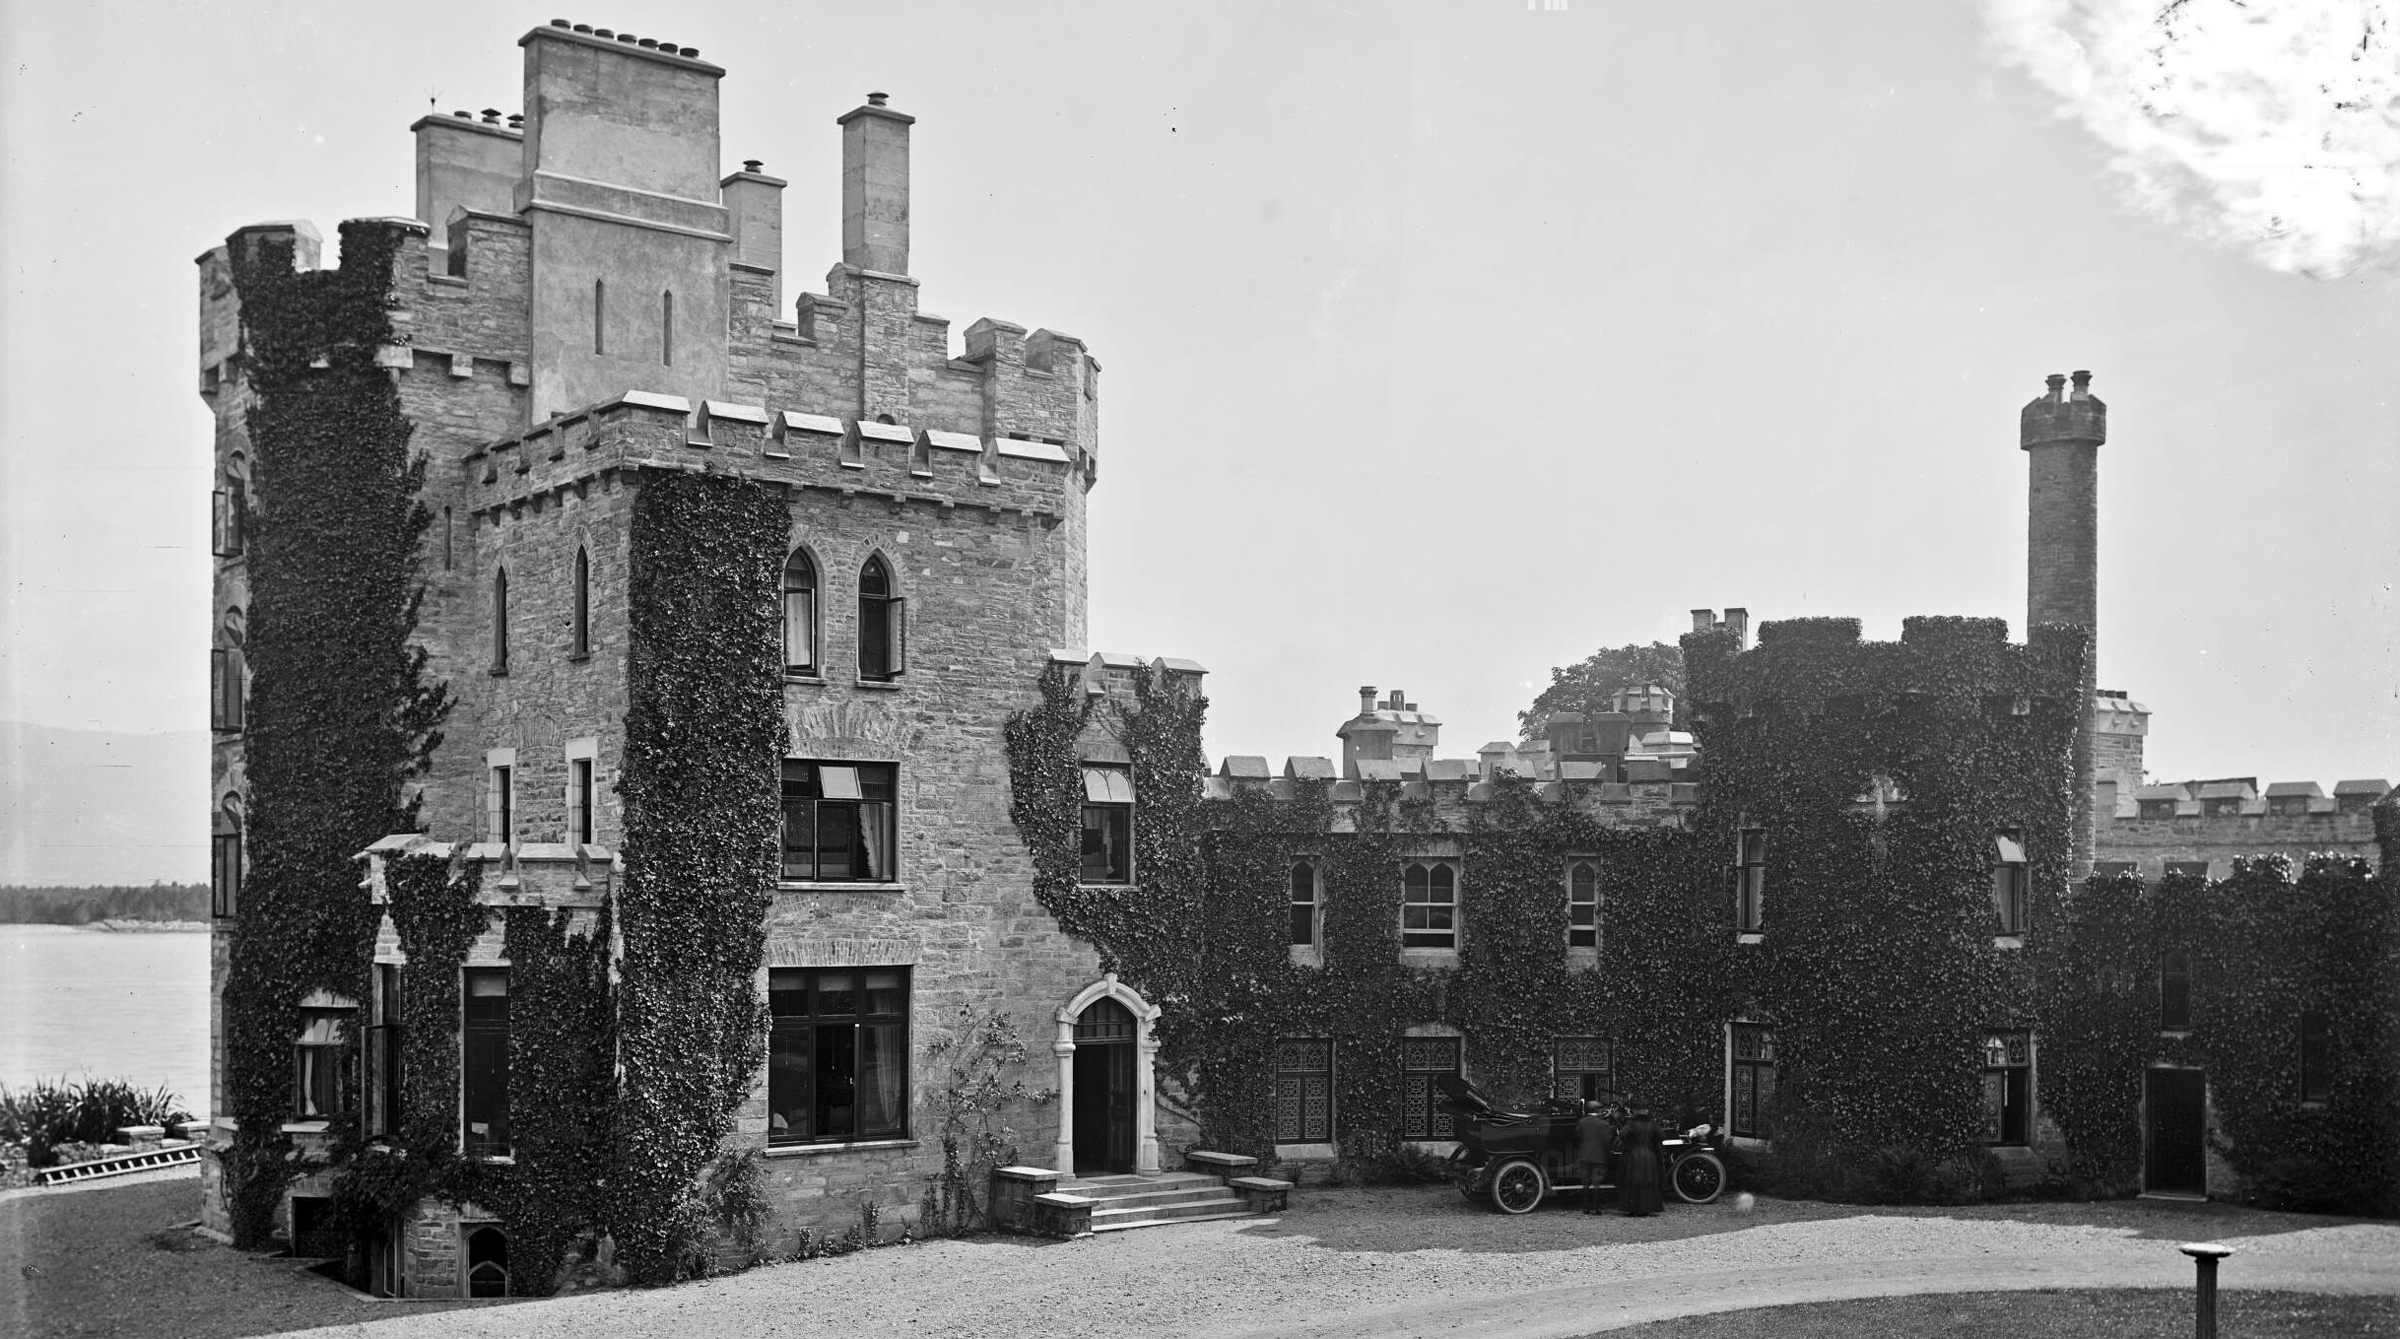 Derryquin Castle photographed by Robert French ca. 1904 to 1914